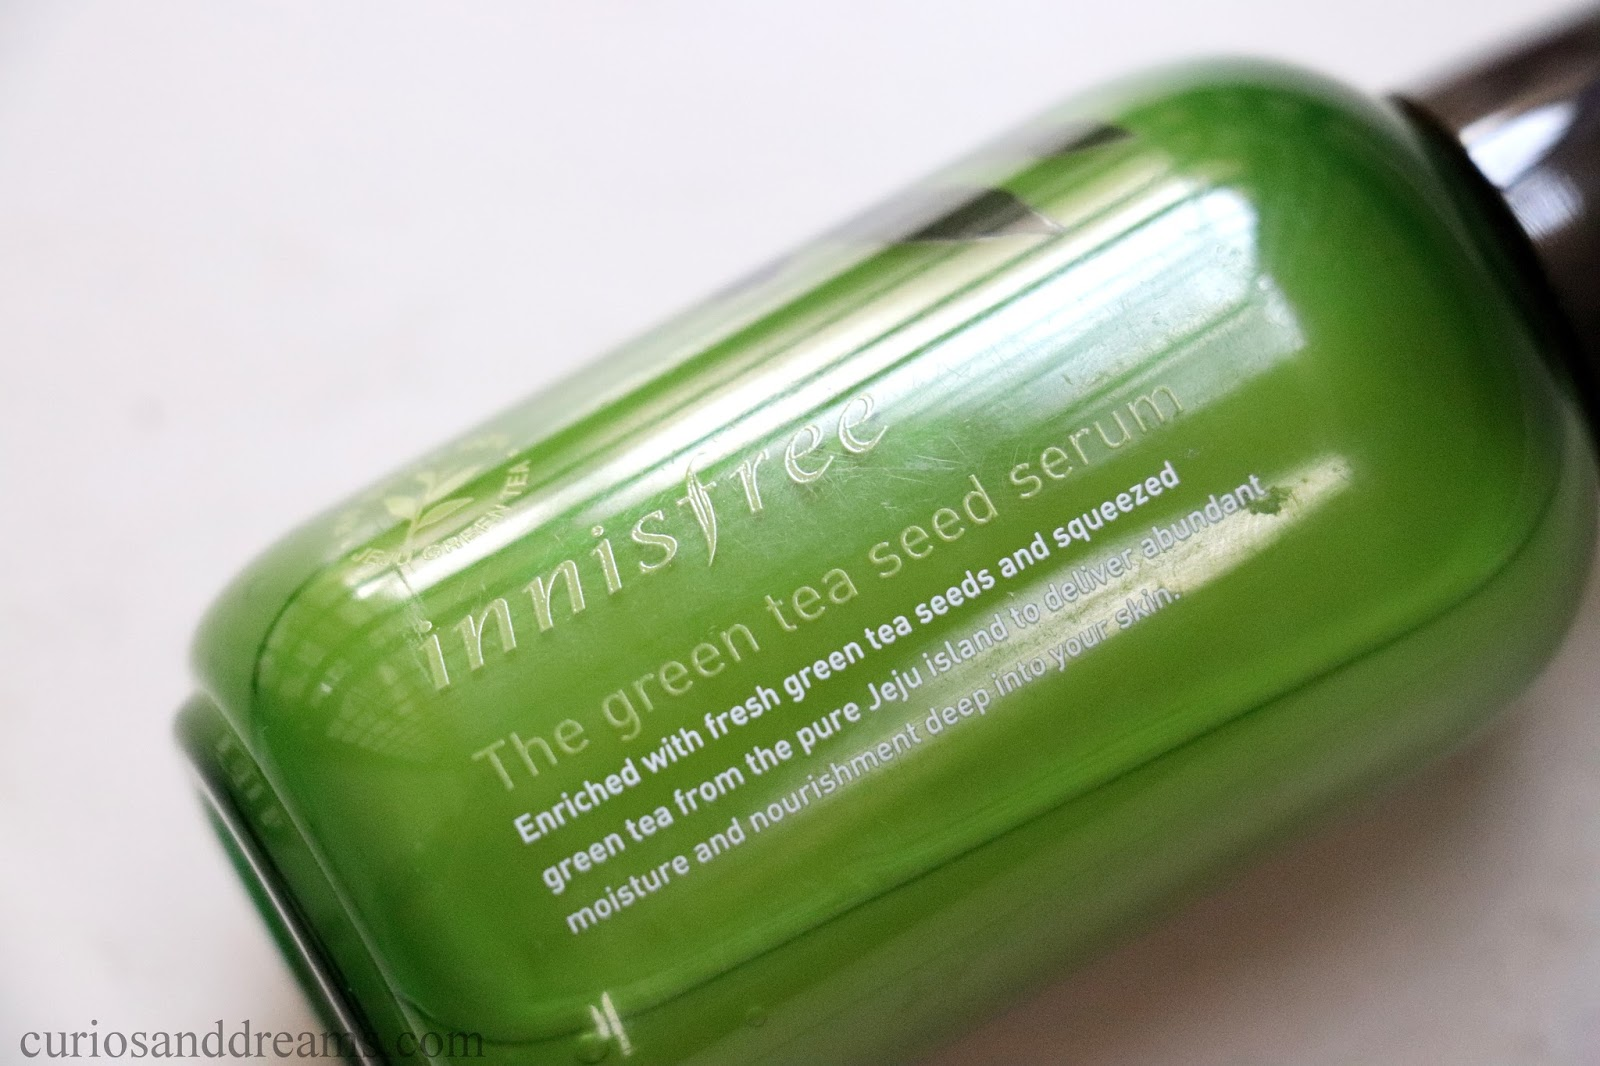 Curios And Dreams Makeup Beauty Product Reviews Innisfree The Green Tea Seed Serum 80ml Review India 80 Ml Plastic Bottle Comes With A Pump Dispenser Cap Though You Will Probably Lose